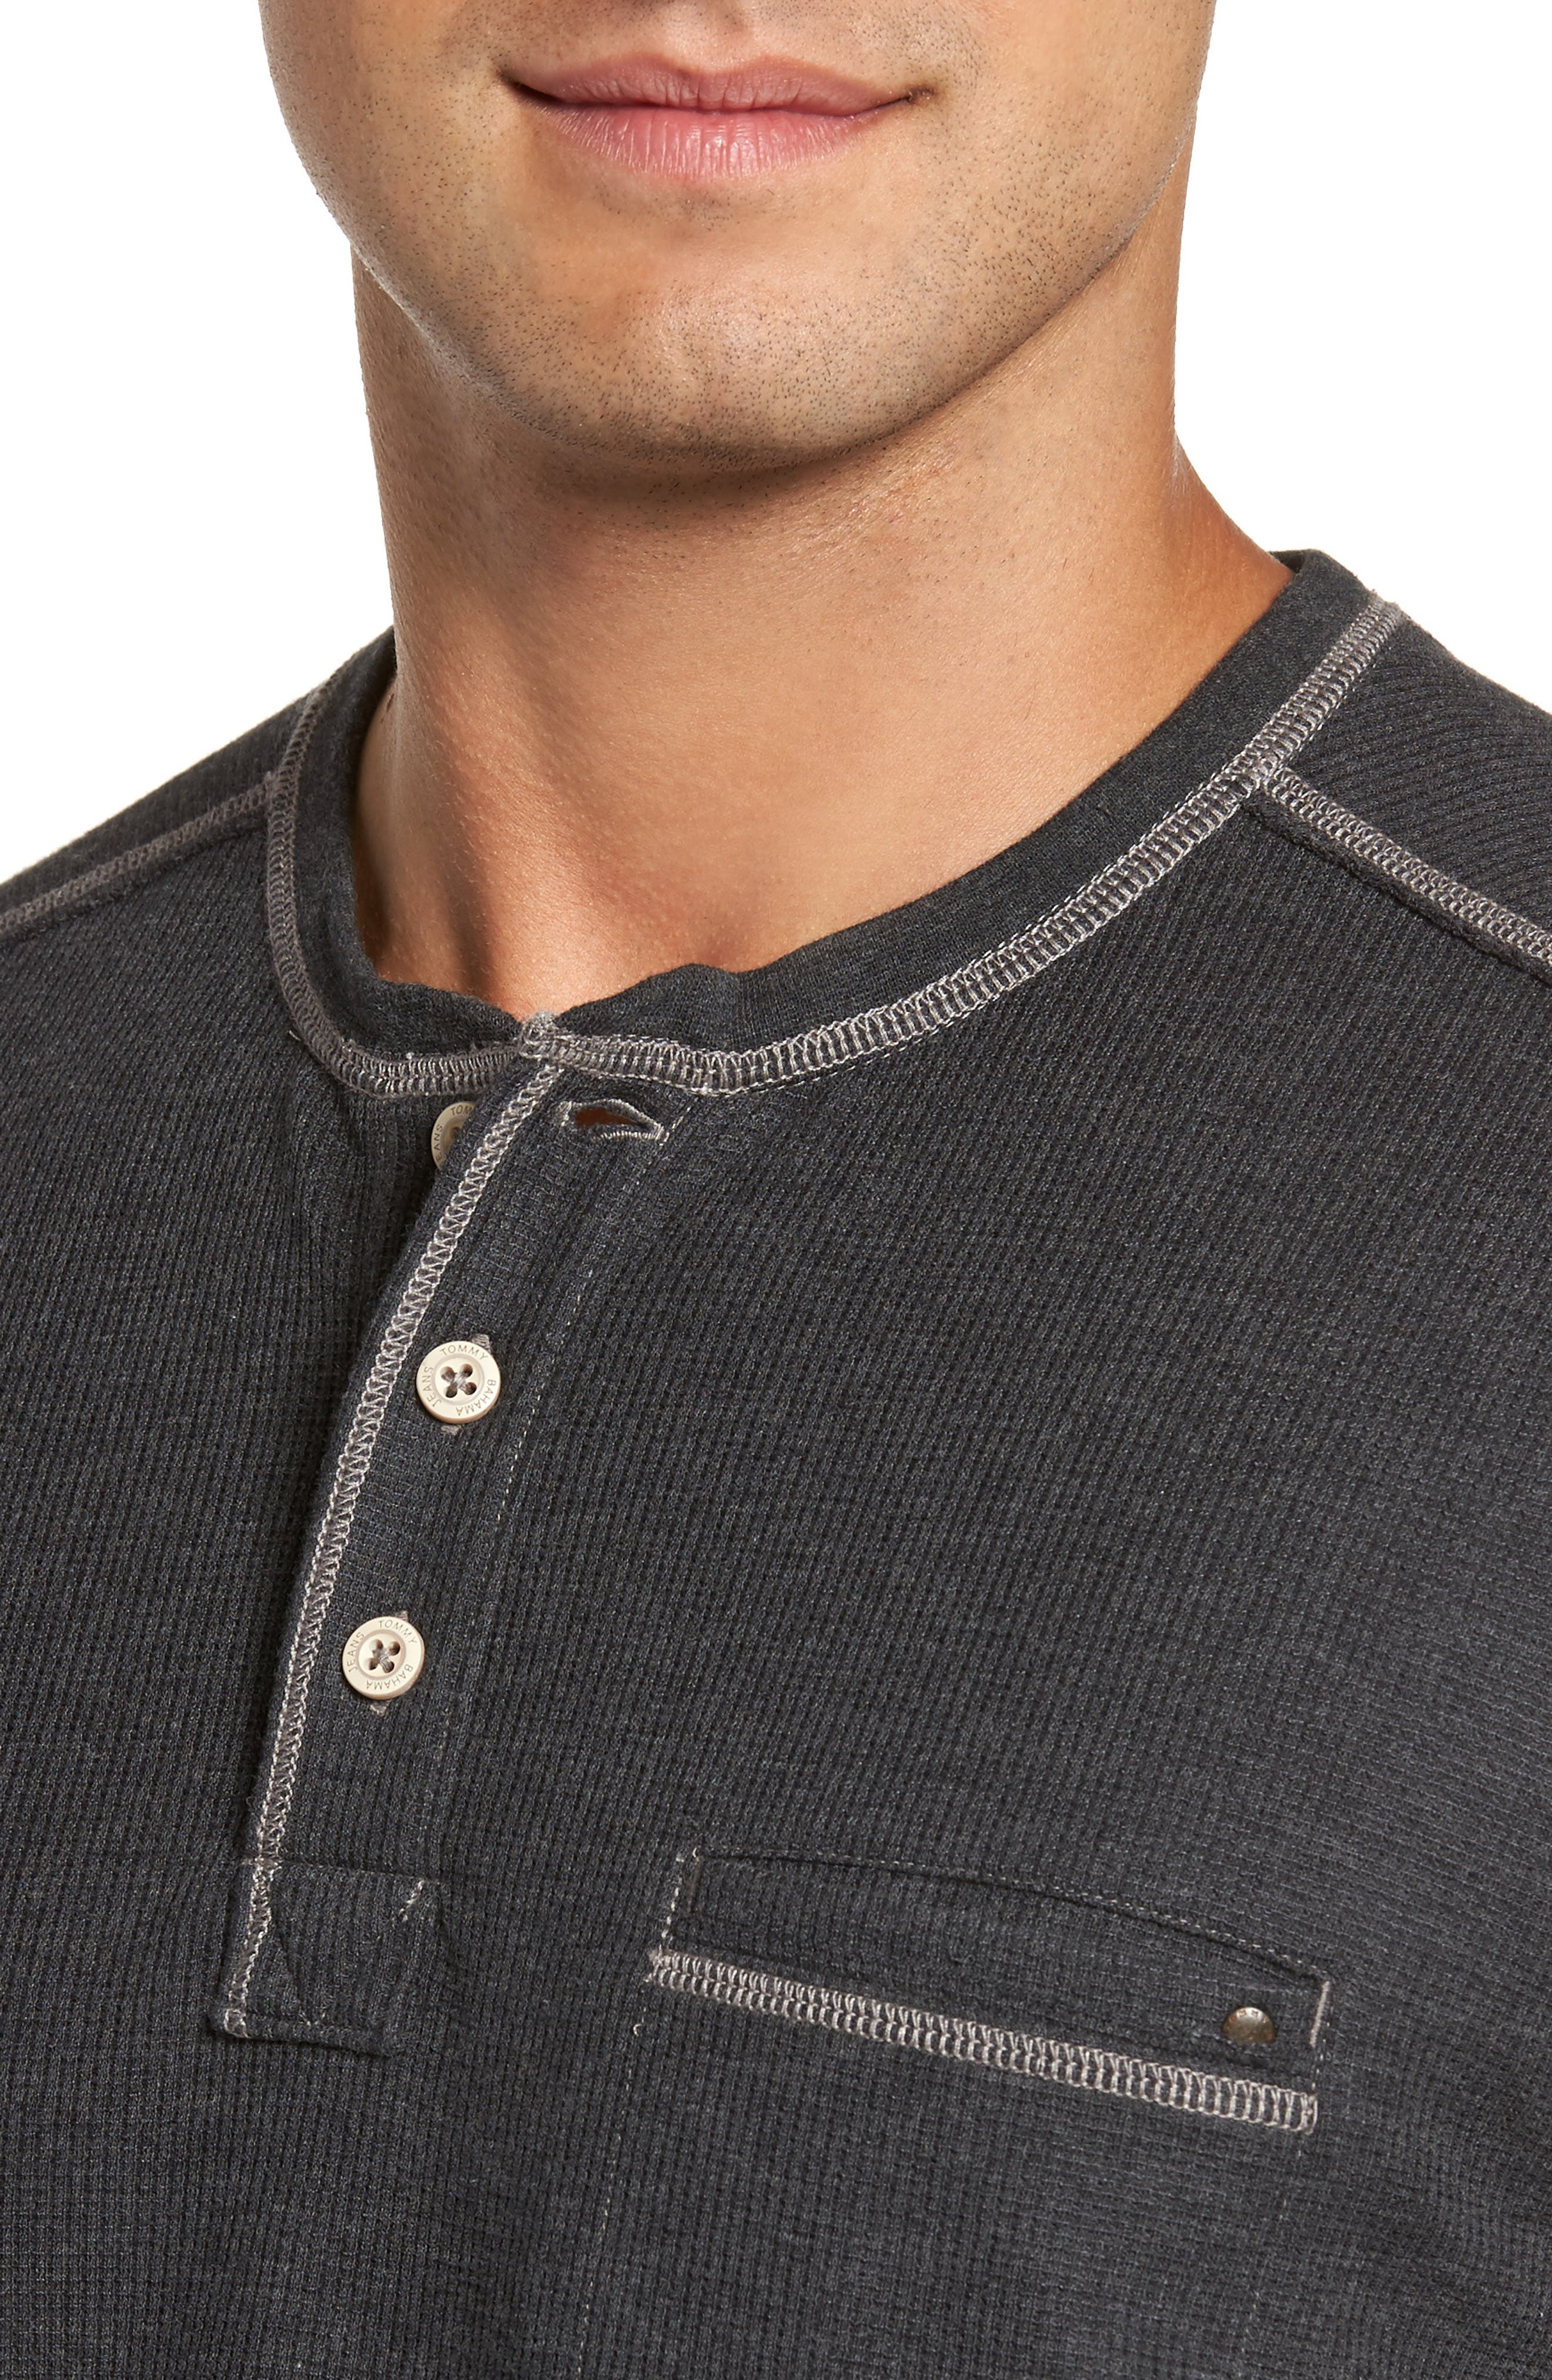 Island Thermal Henley,                             Alternate thumbnail 4, color,                             005